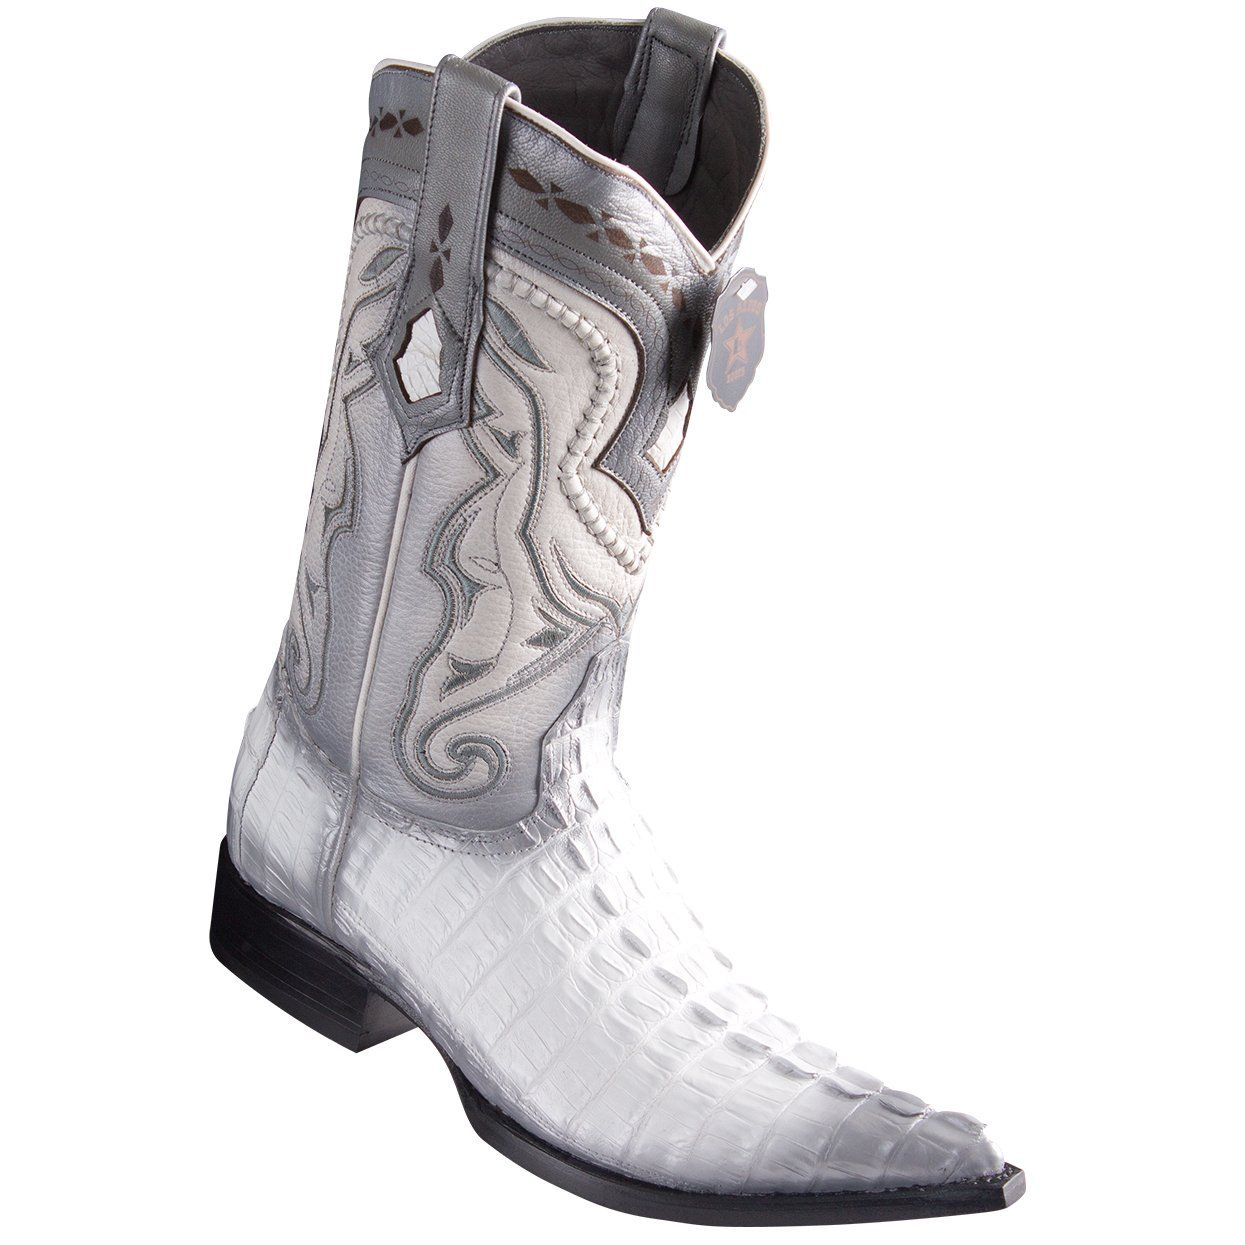 6d37e71e149 Los Altos Boots Caiman Tail White Pointed Toe Cowboy Boots in 2019 ...